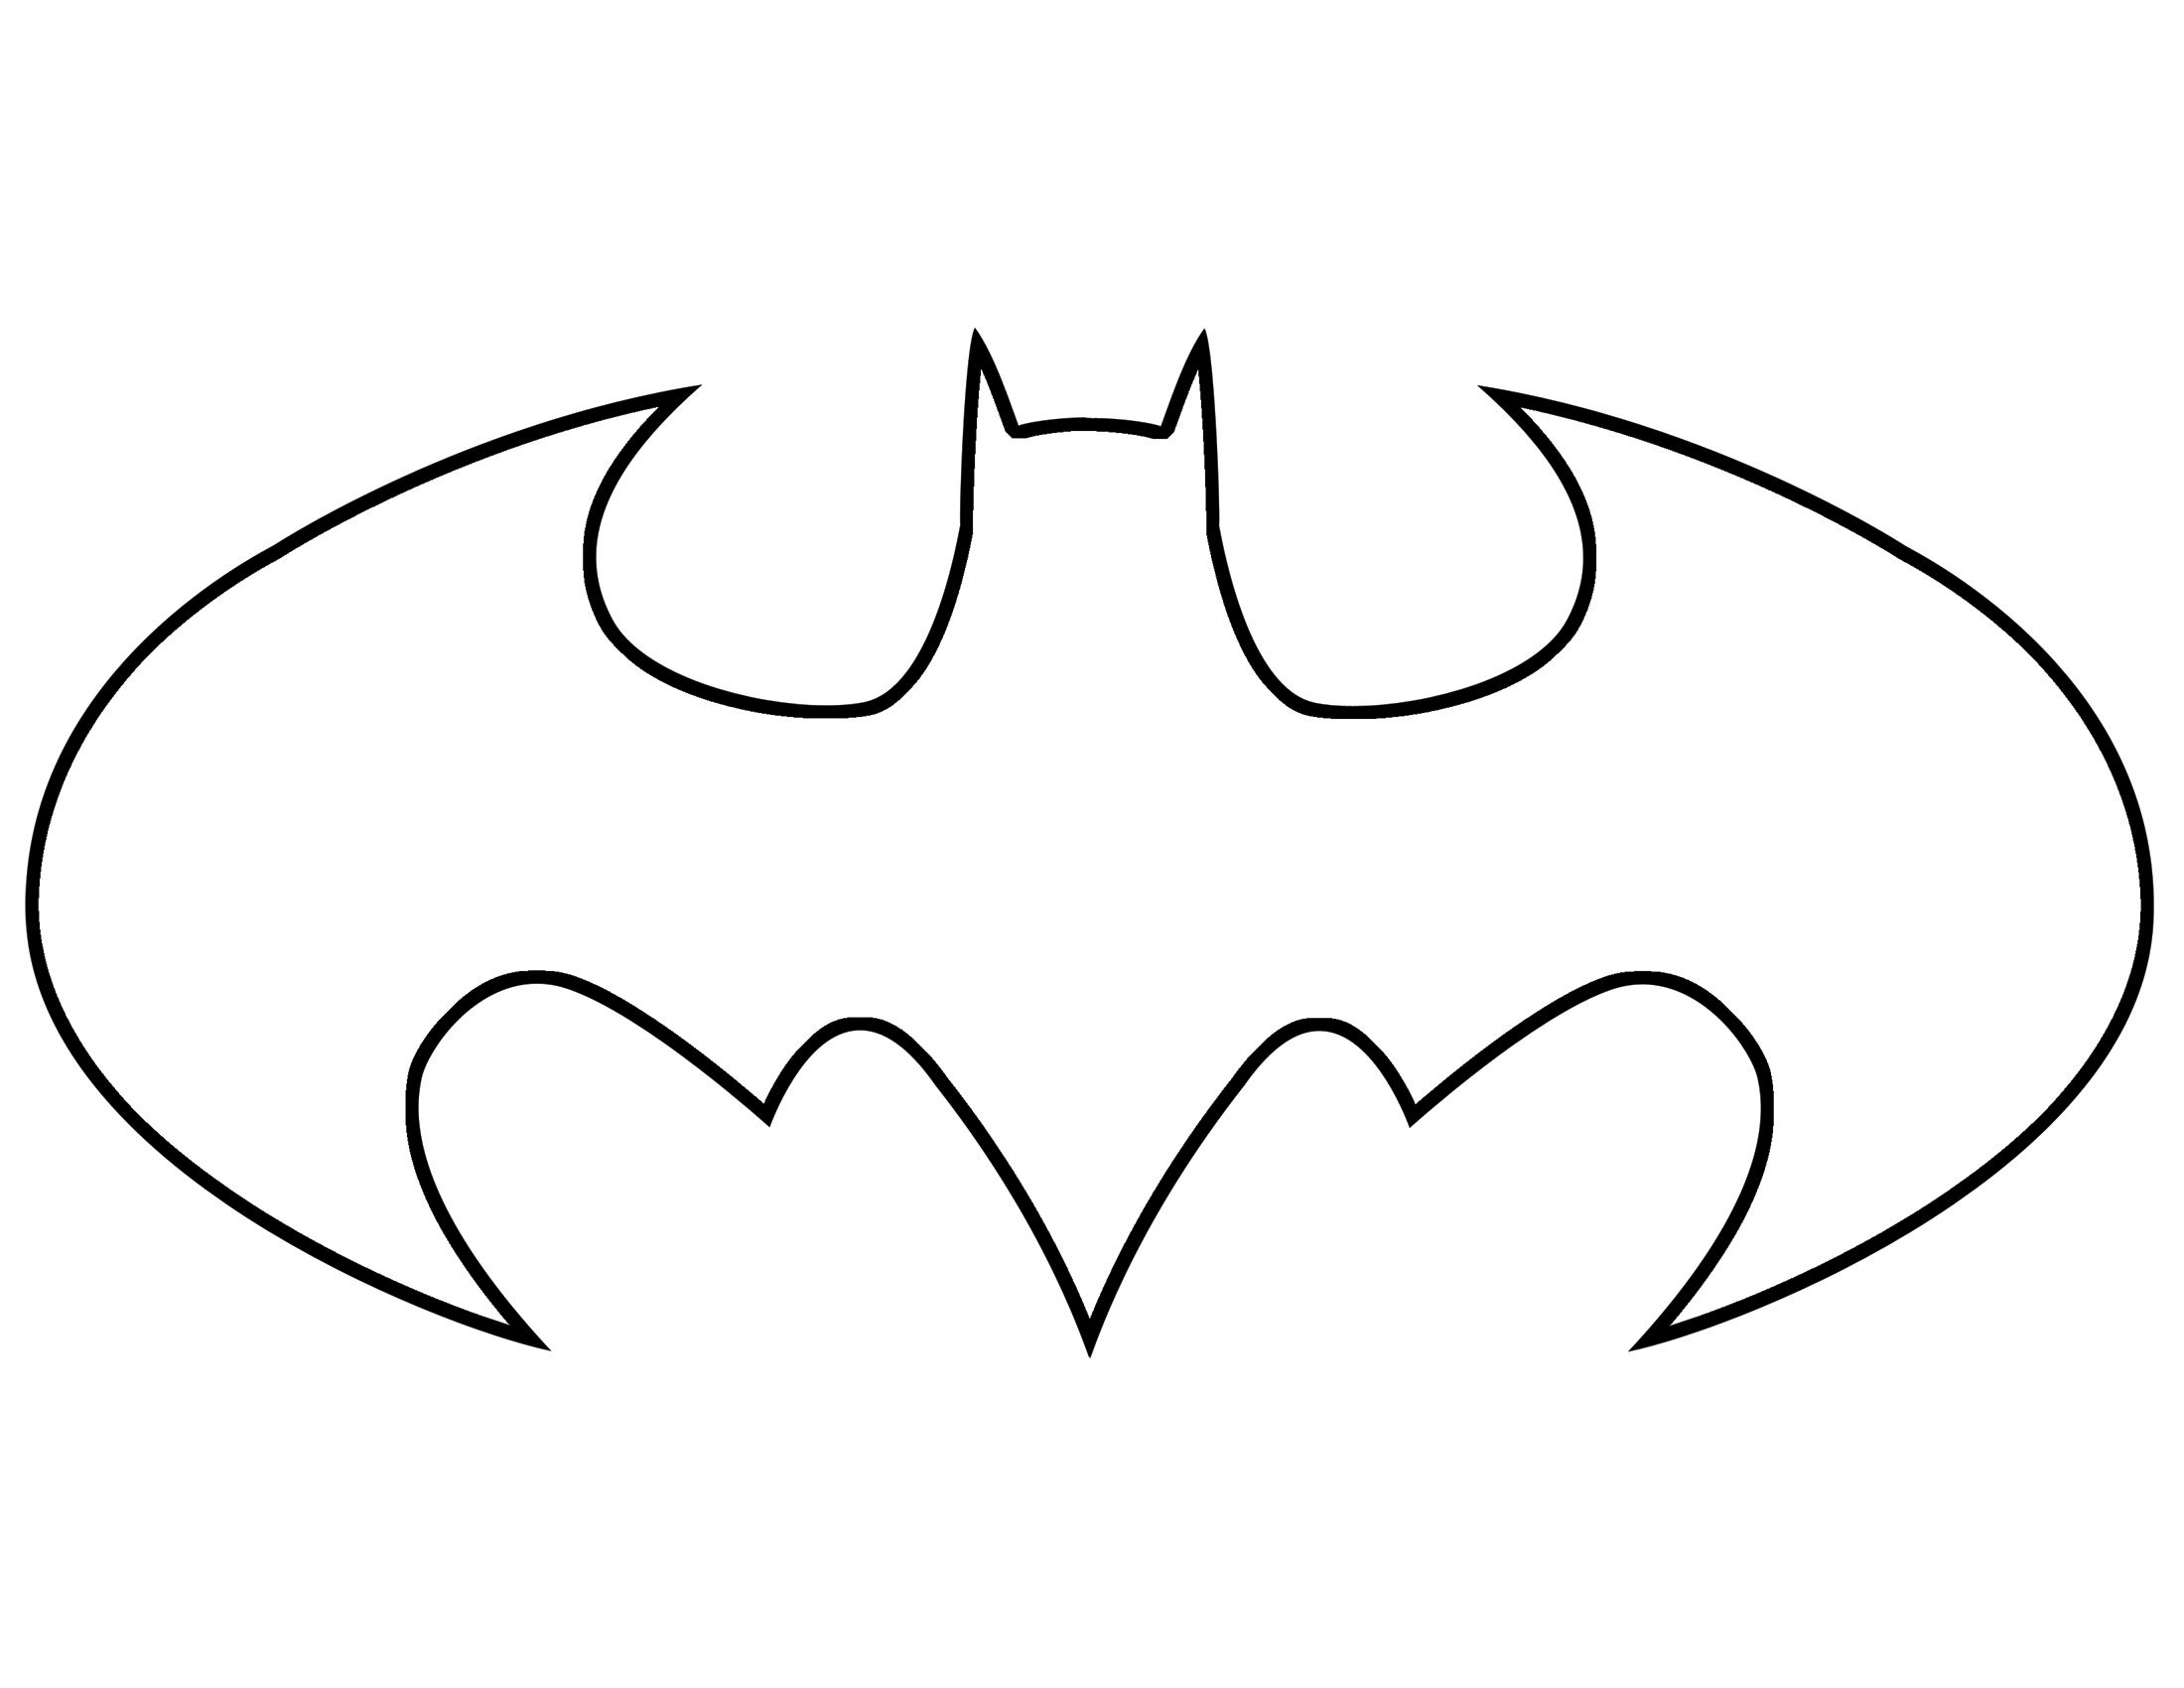 Theretroinc On Etsy | Halloween | Pinterest | Halloween, Batman And - Superhero Pumpkin Stencils Free Printable